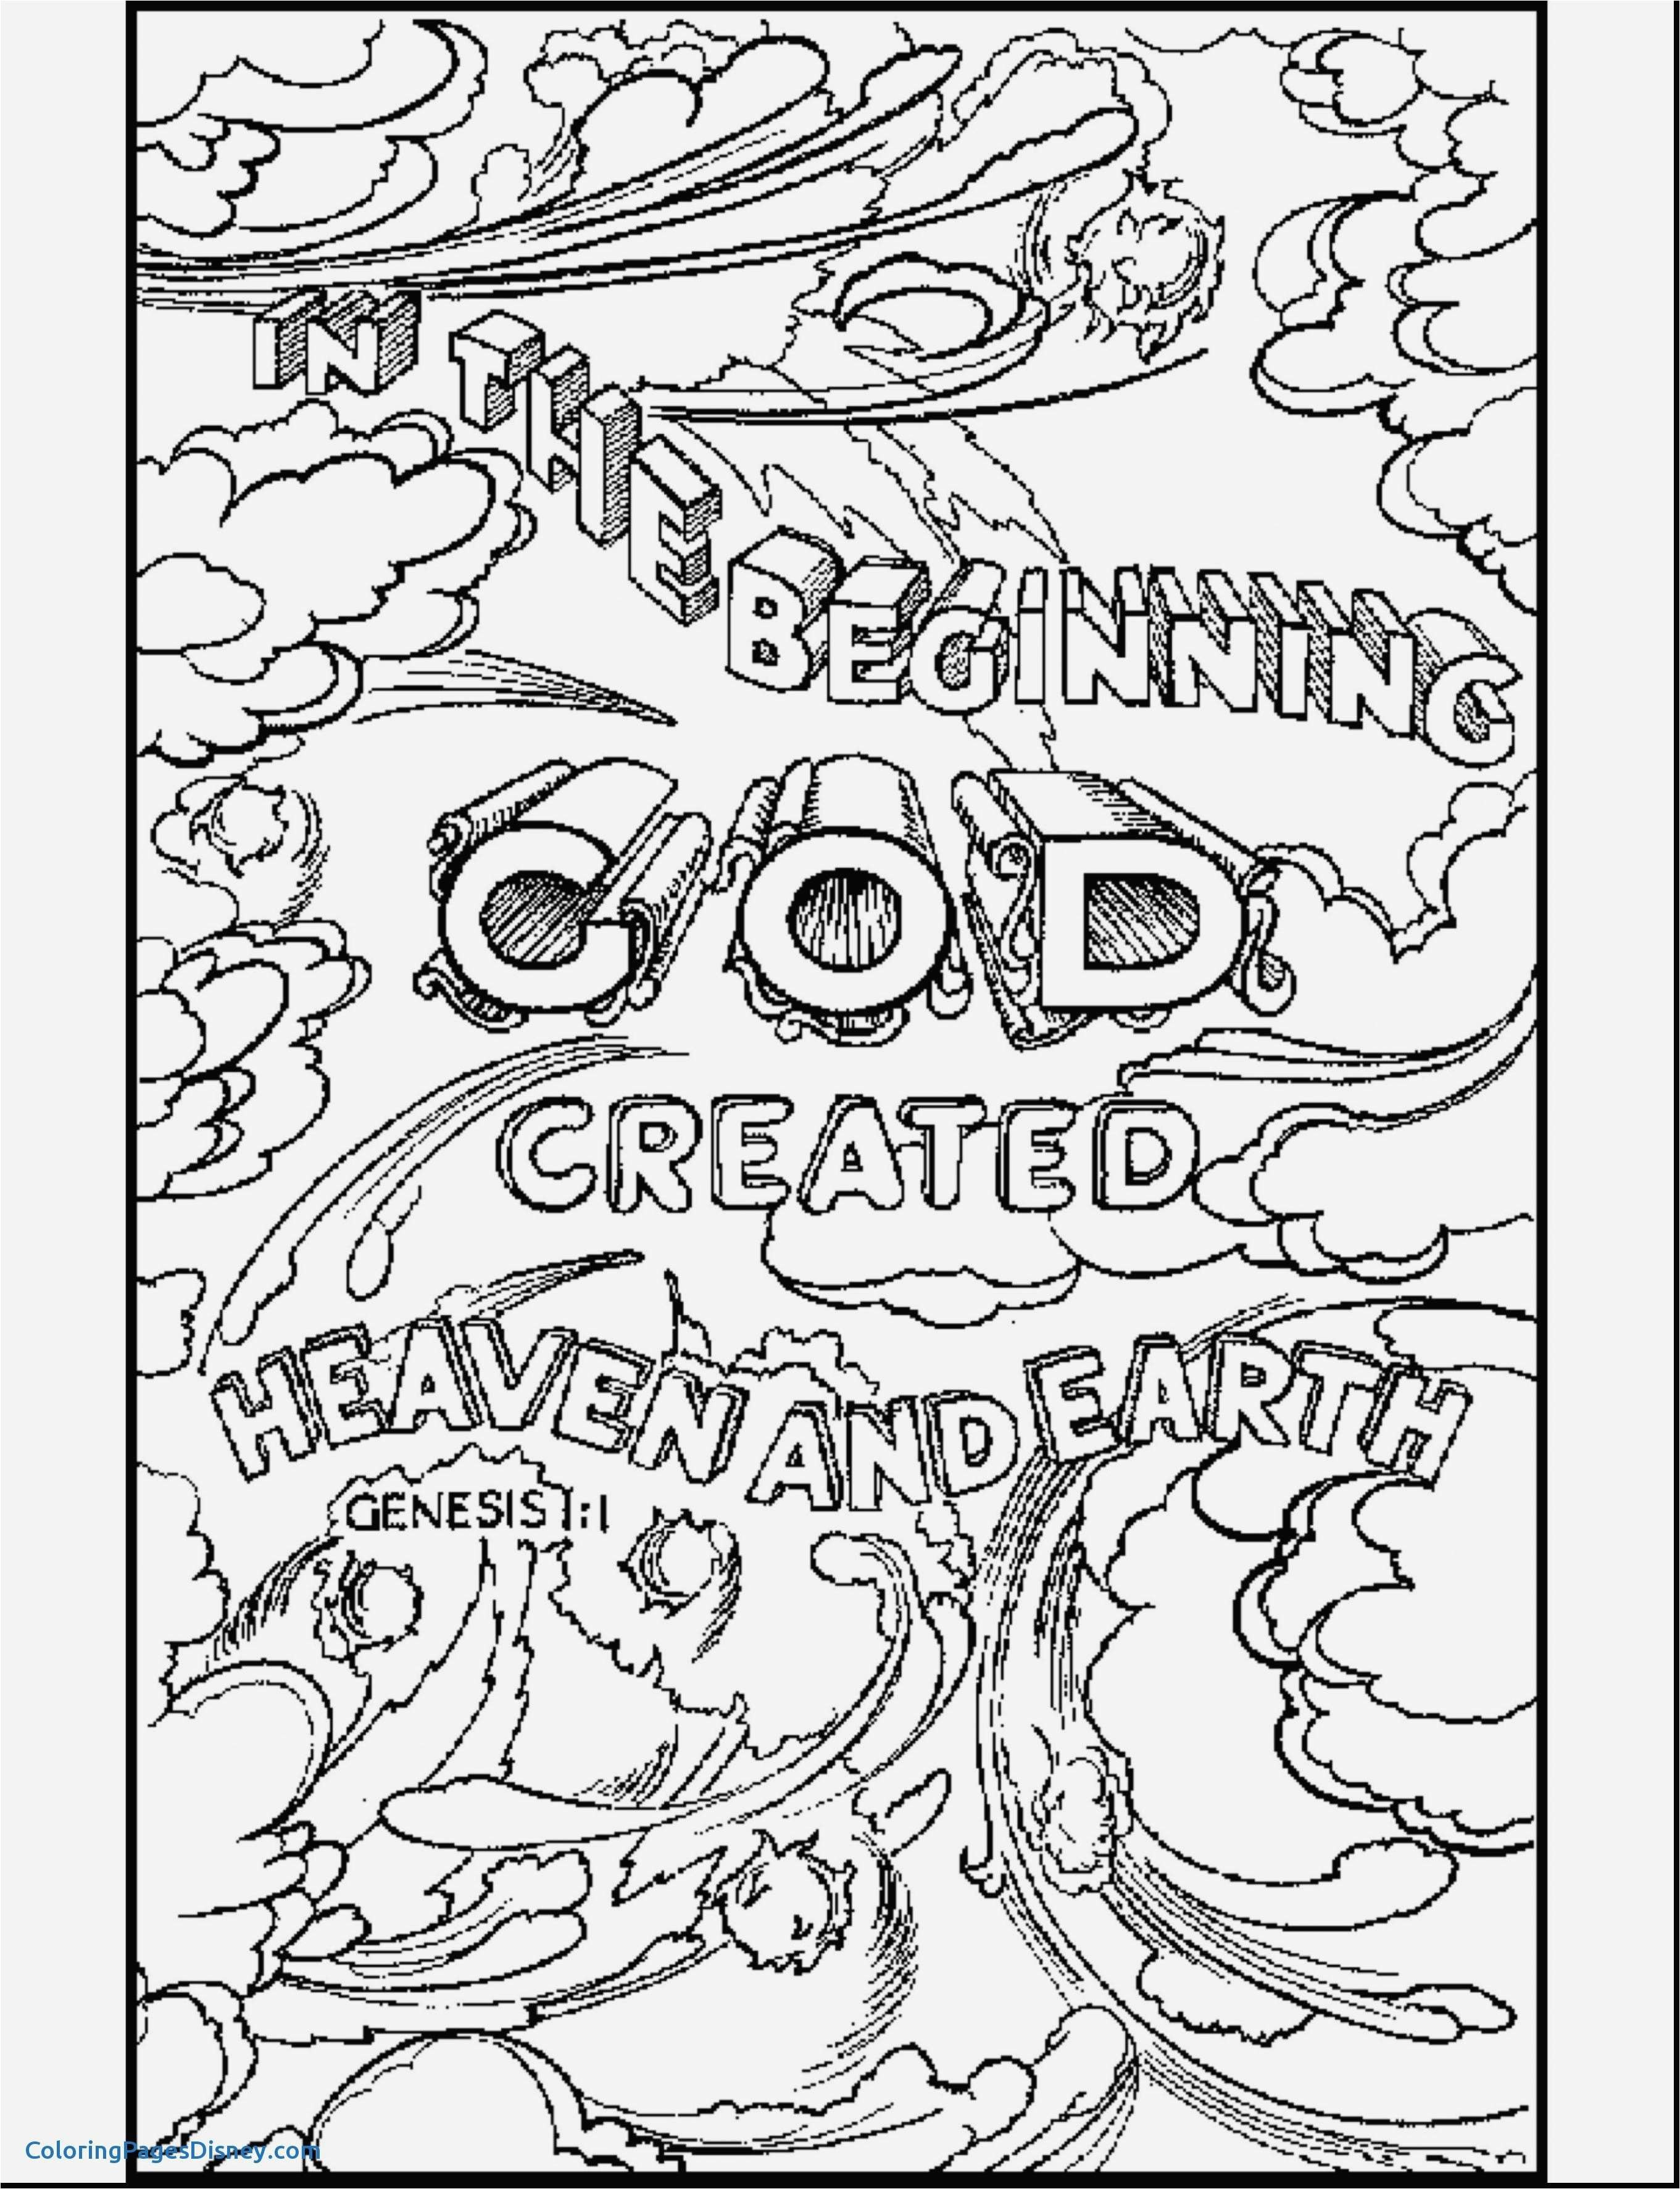 free bible coloring pages kids Download-Coloring Pages Download Free Beautiful 25 Best Free Bible Coloring Pages Free Download Coloring Pages 8-b